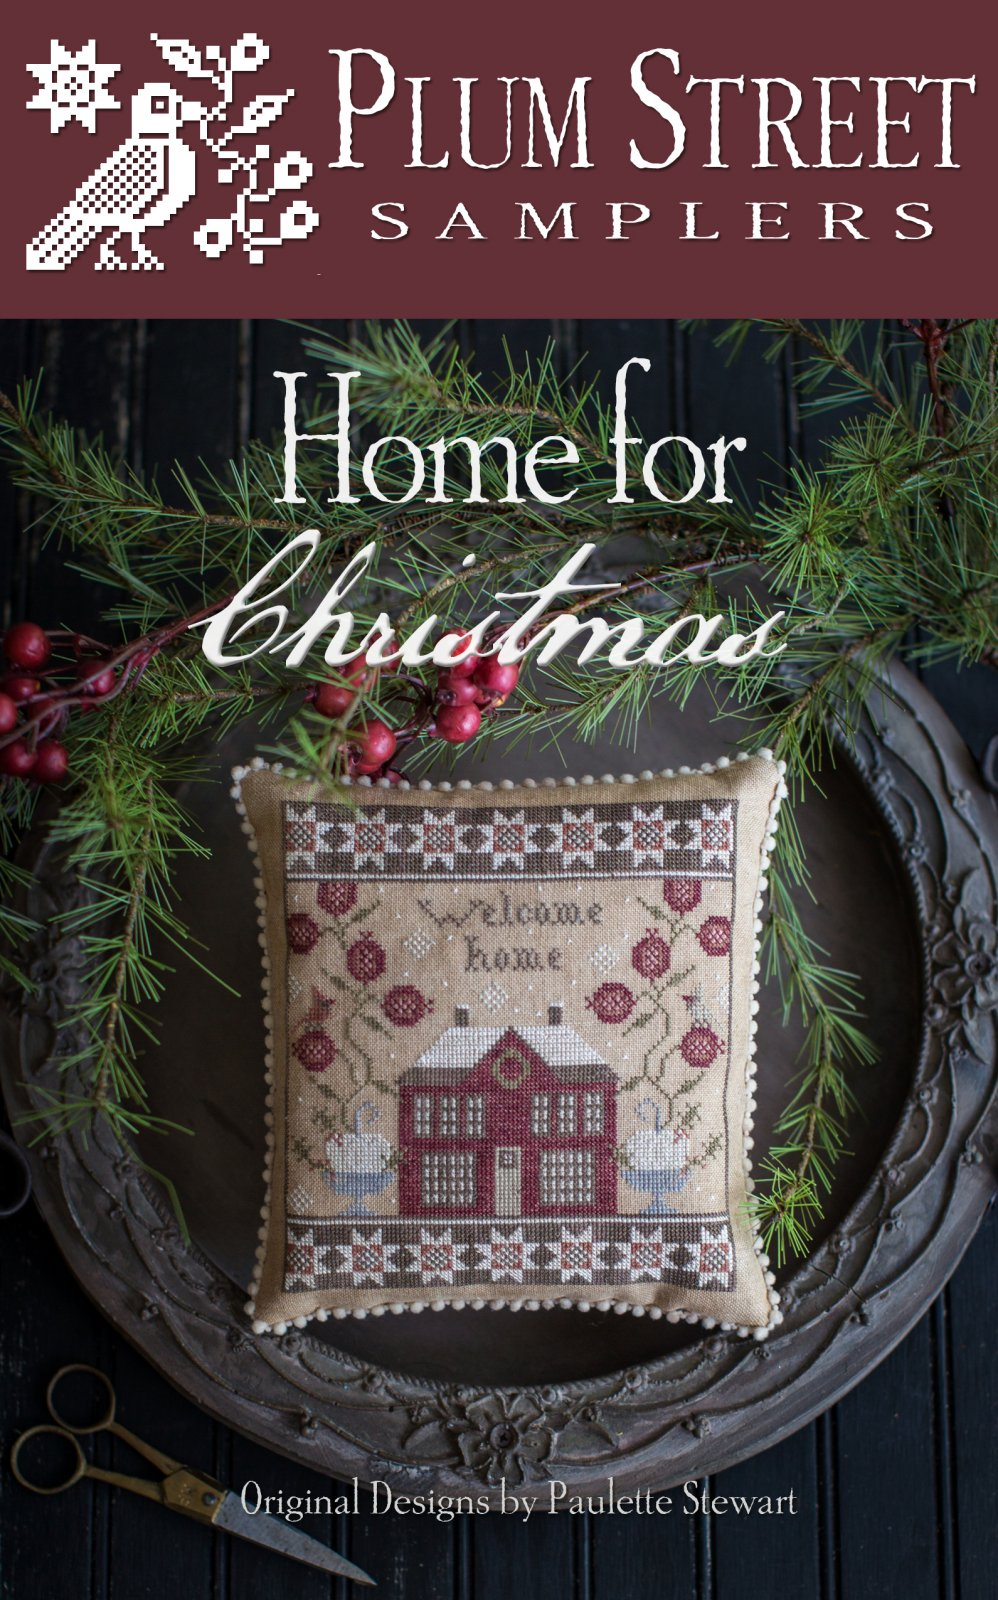 Home for Christmas ~ Plum Street Samplers